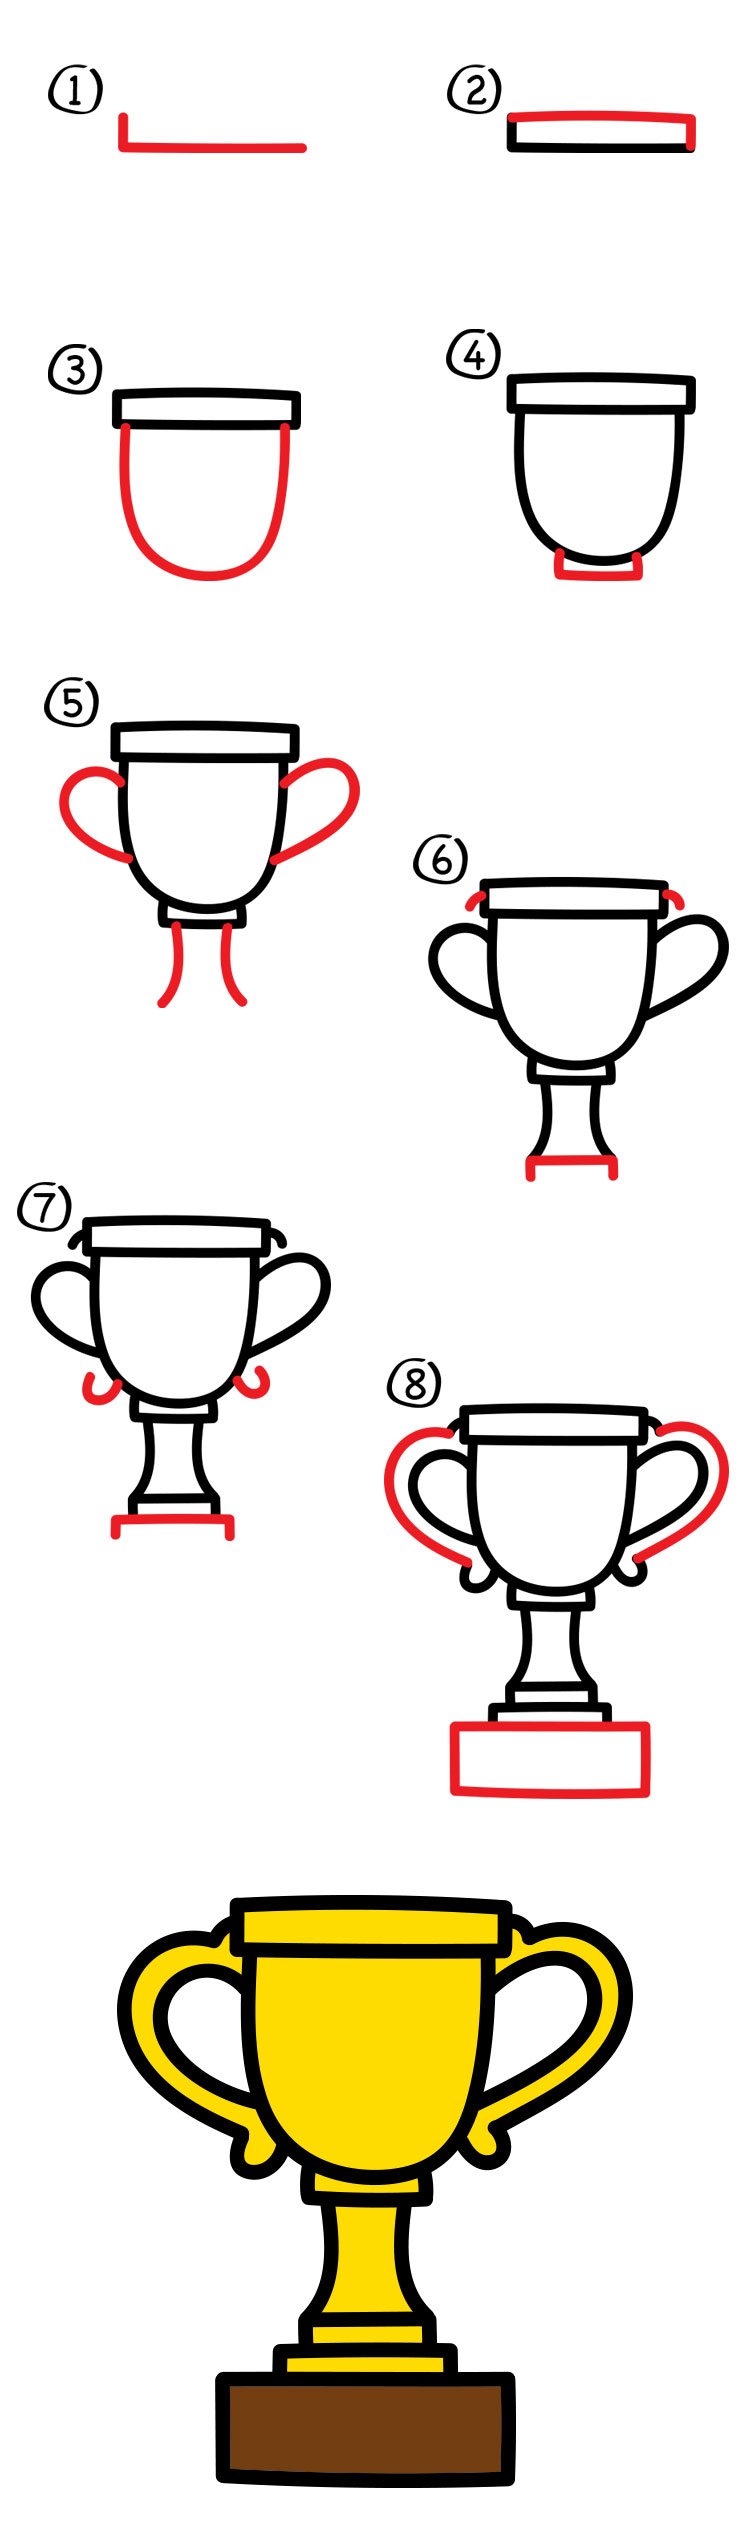 How to draw a trophy for fathers day art for kids hub thecheapjerseys Choice Image